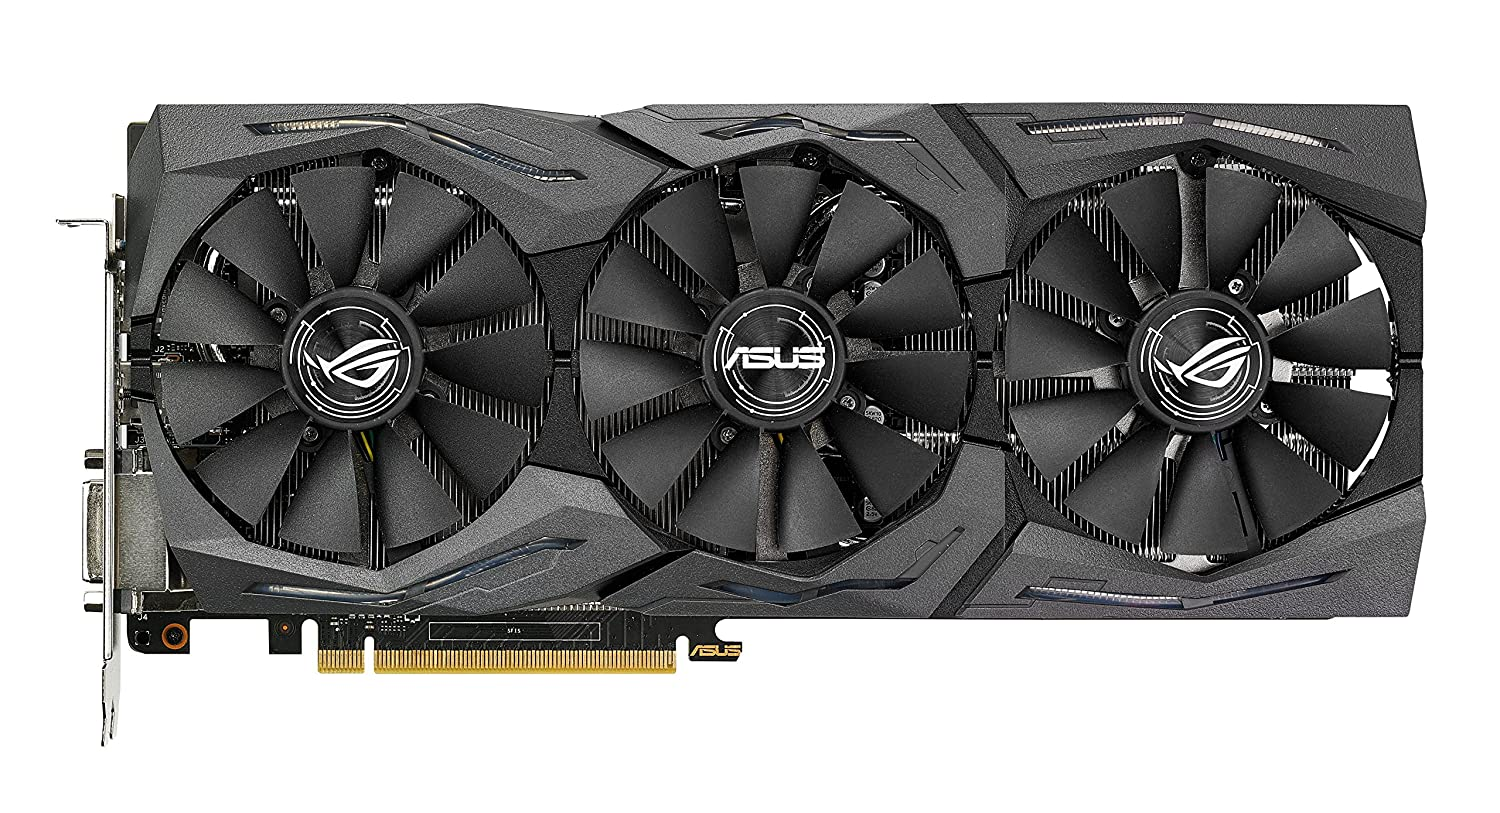 ASUS ROG STRIX Radeon Rx 480 8GB DP 1.4 HDMI 2.0 Polaris Vr Ready...